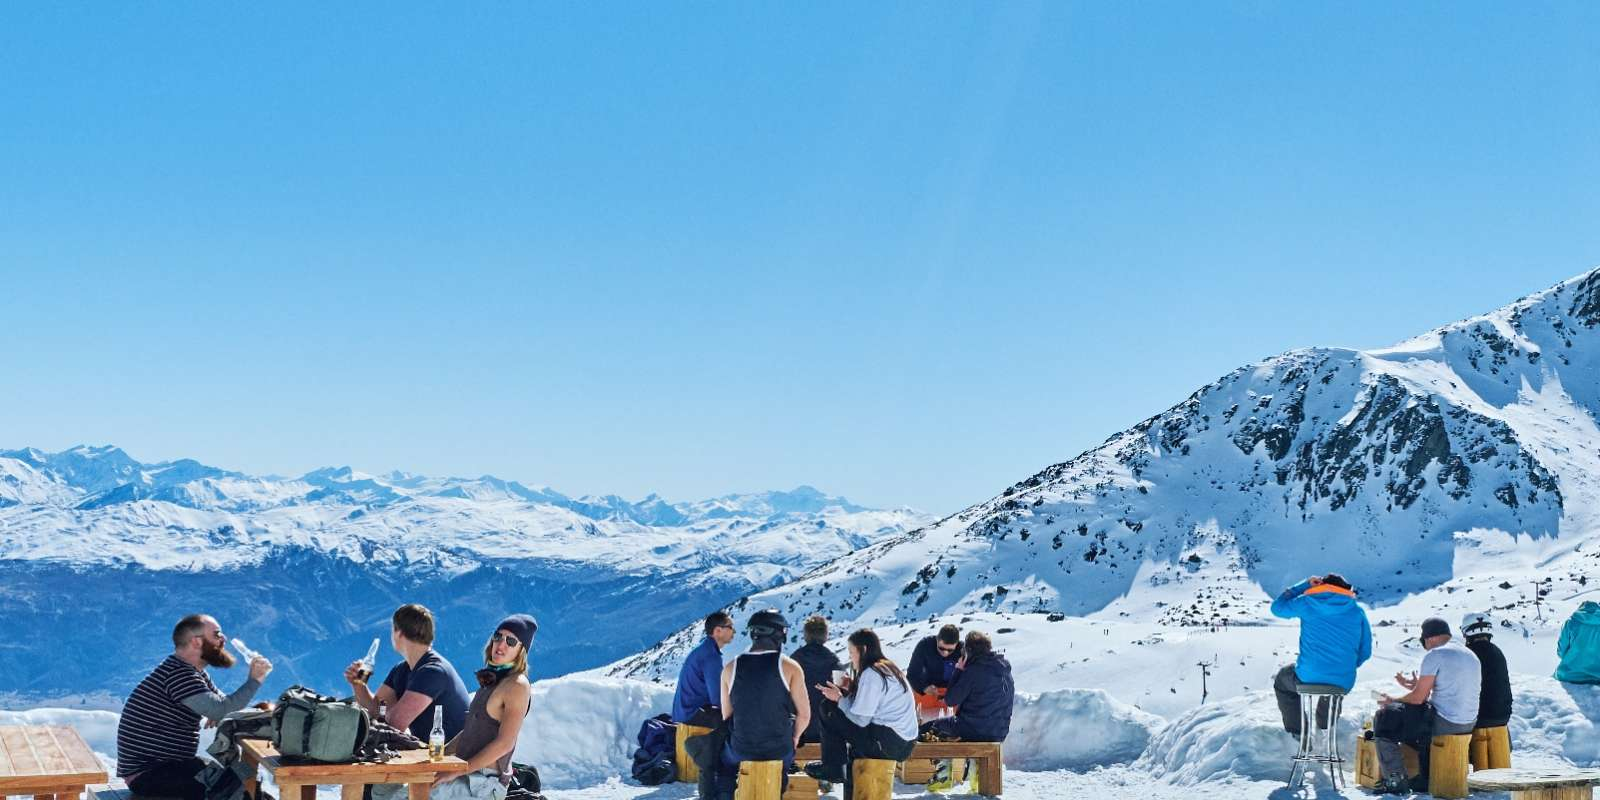 Spring ski and refreshment break at Remarkables Ski Field